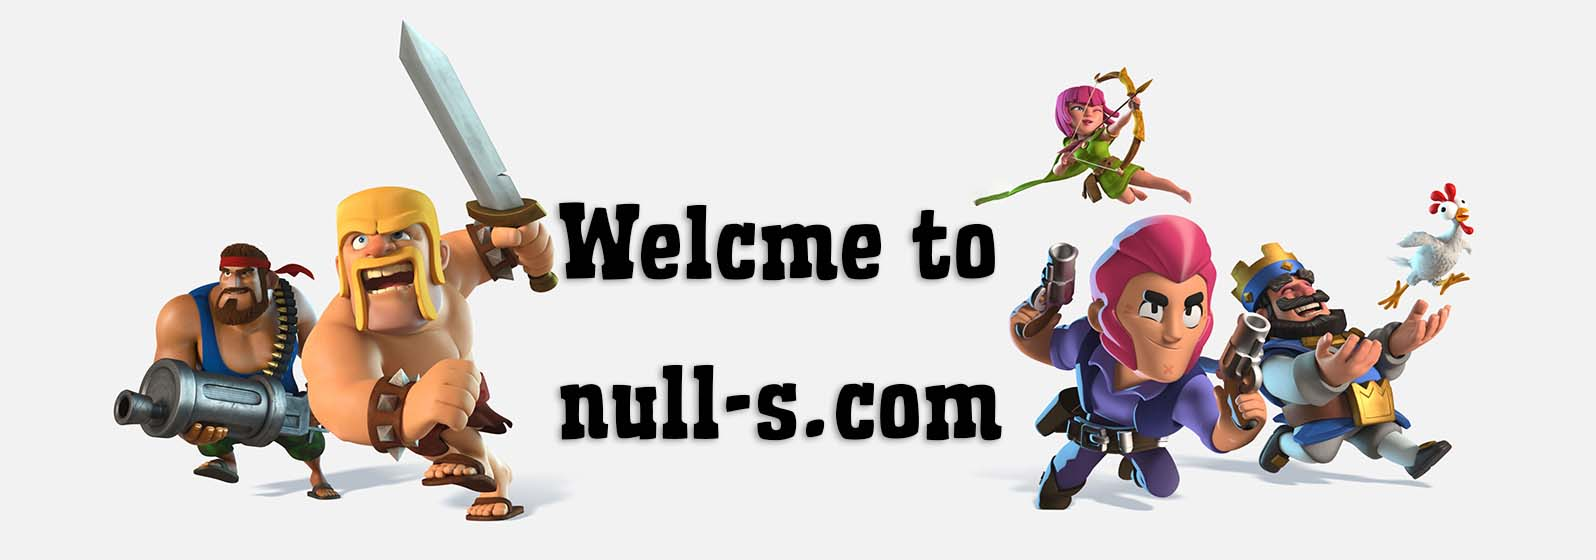 Download Null's Servers Brawl Stars / Clash Royale / Clash of Clans